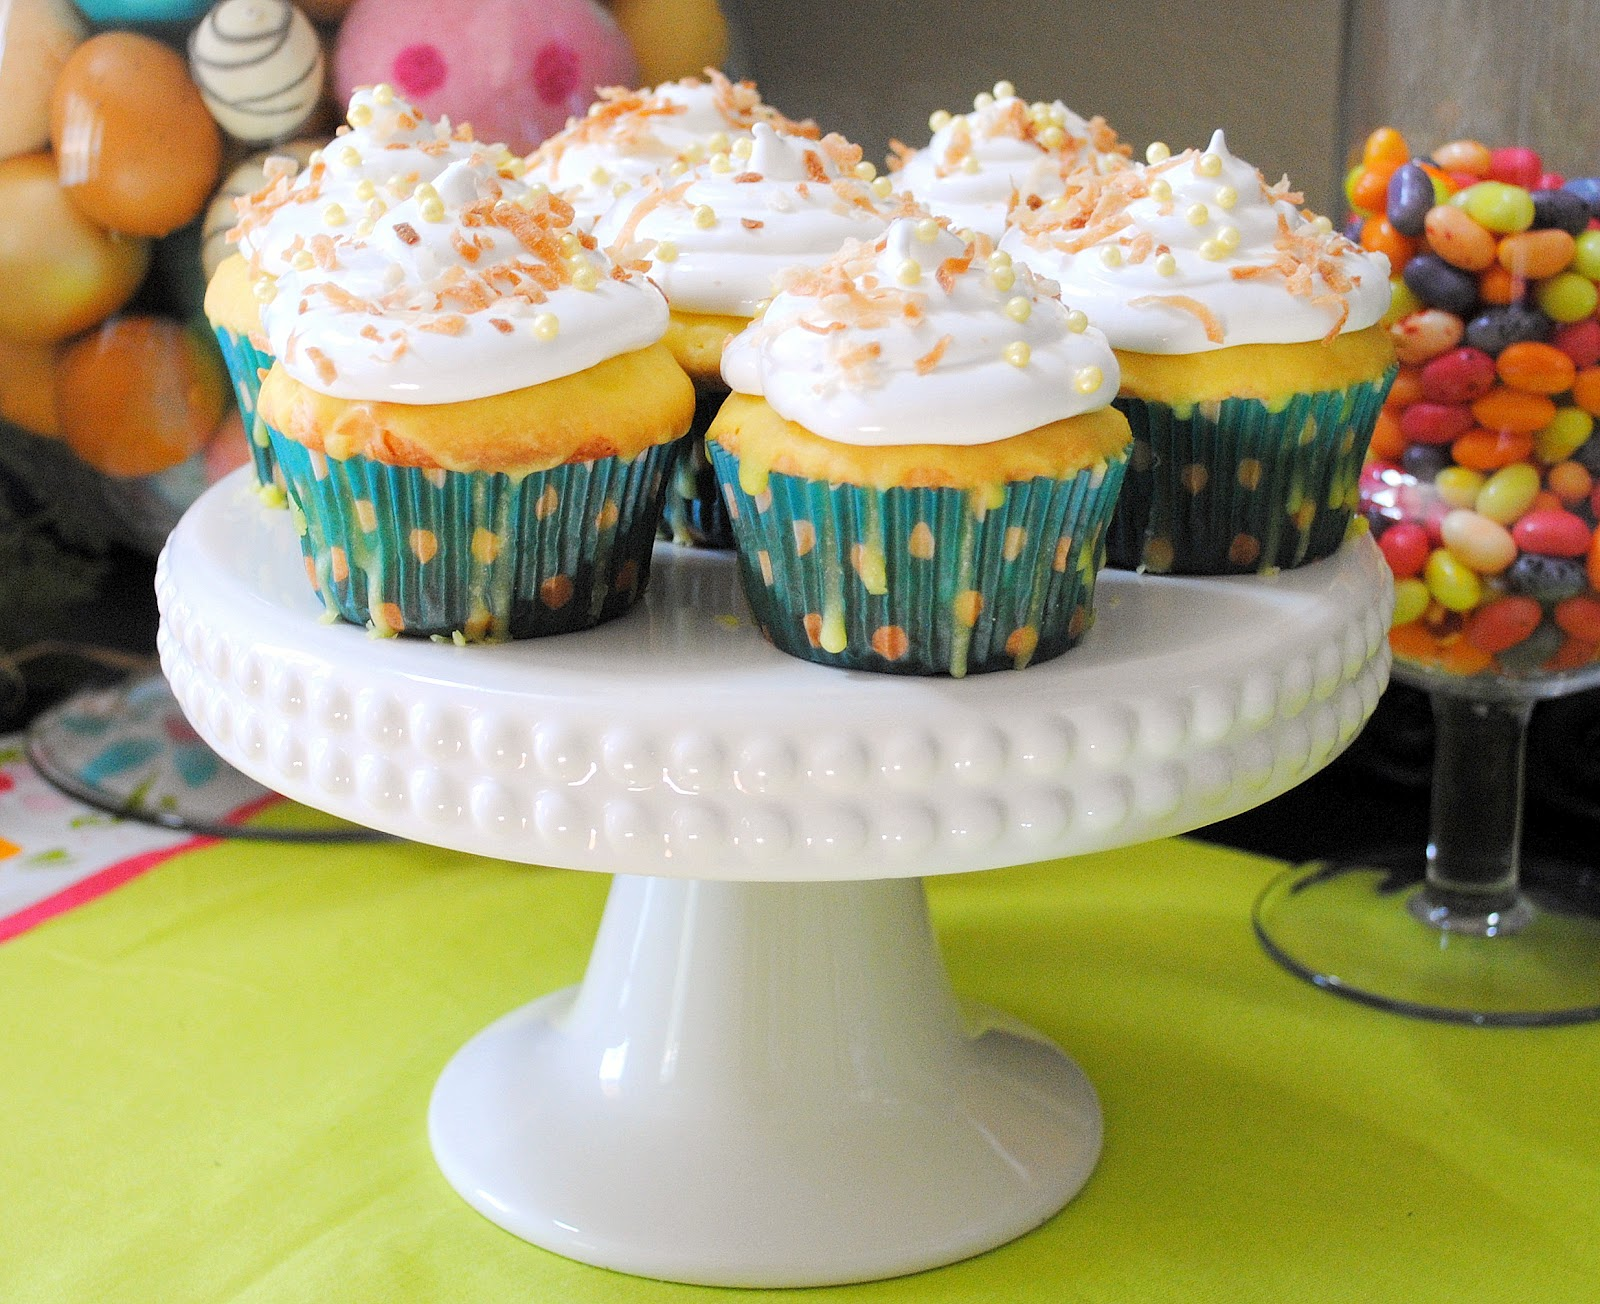 ... Cupcake of the week... Lemon-Coconut with Coconut Meringue Frosting